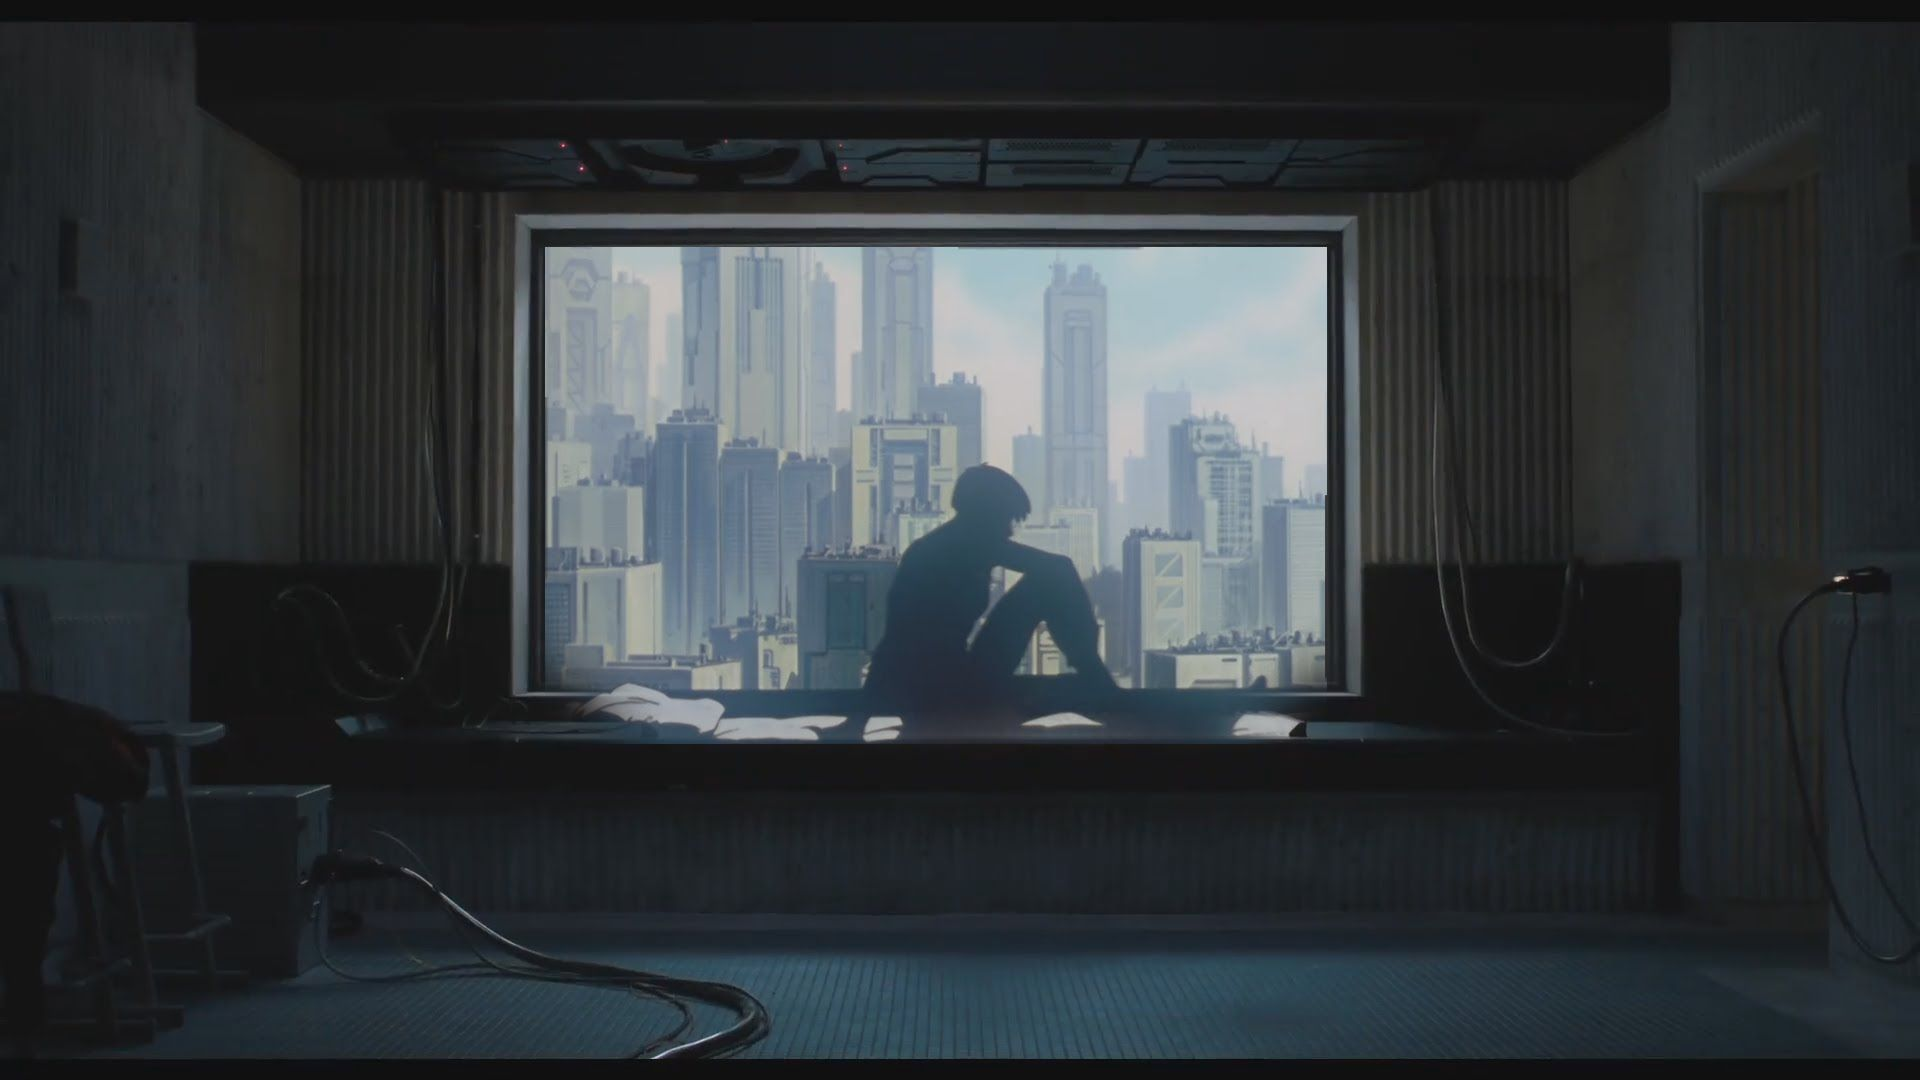 Ghost in the shell anime window scene crystals